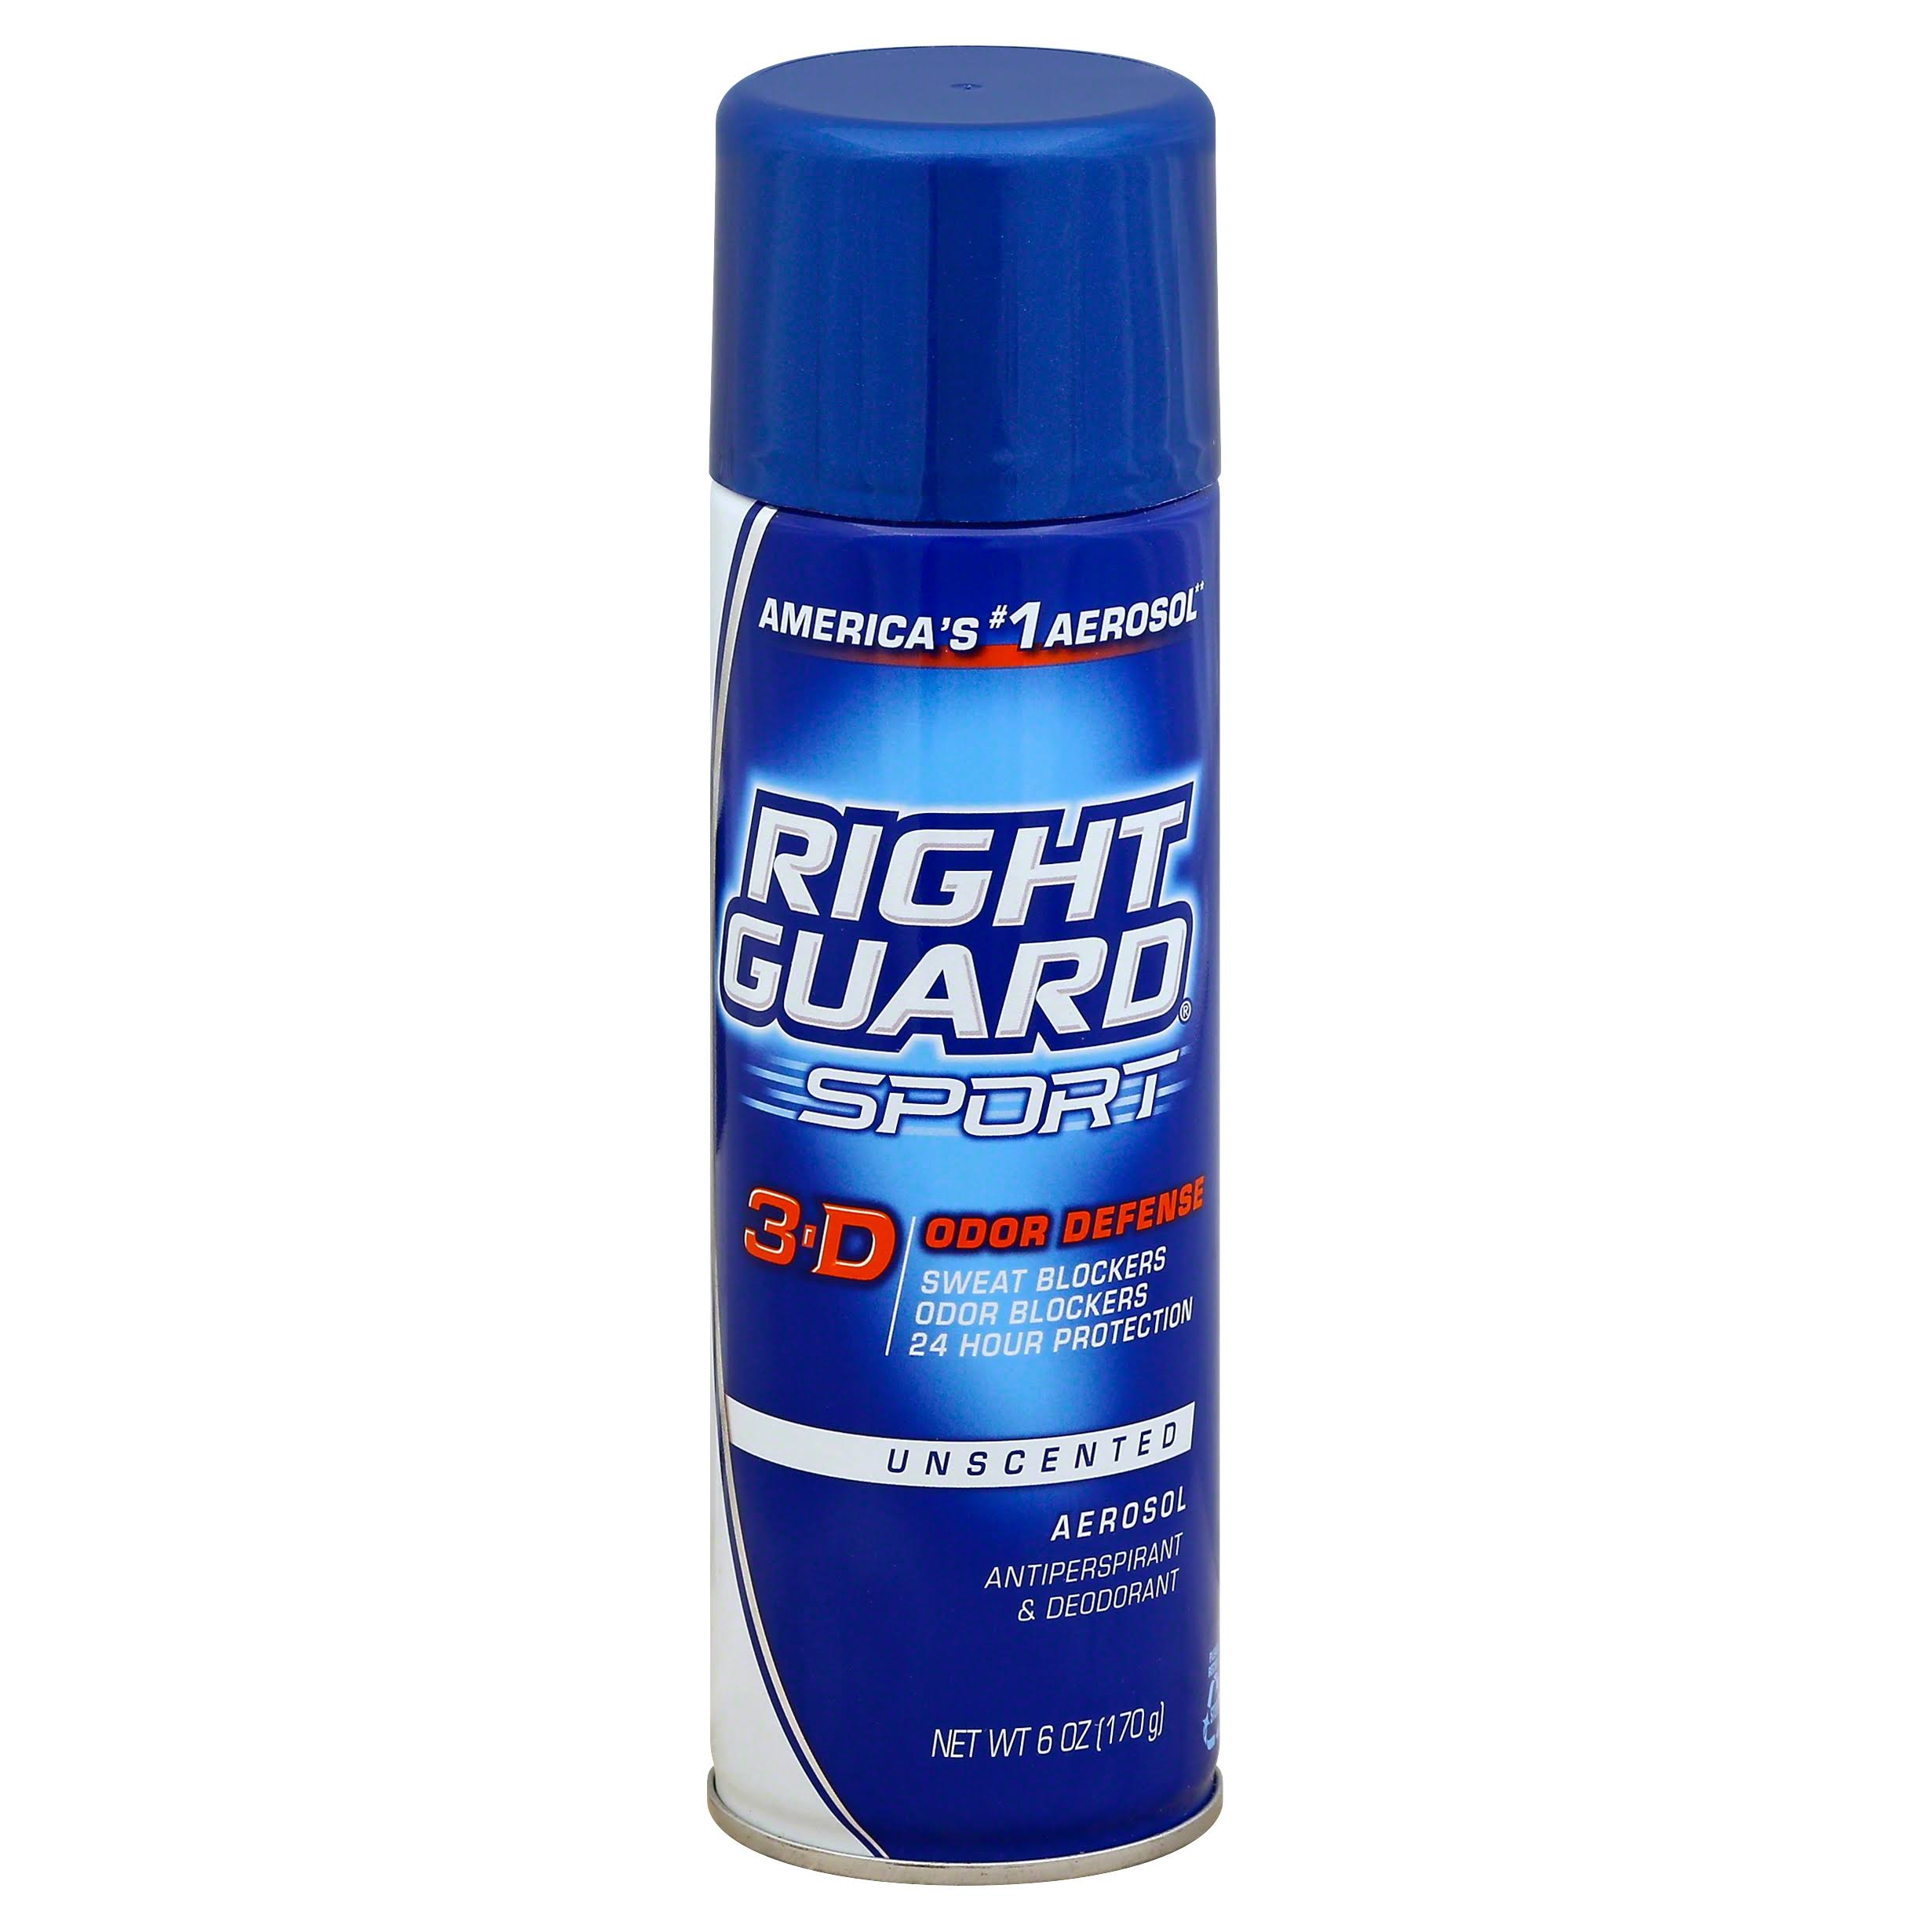 Right Guard Sport Antiperspirant and Deodorant Aerosol - Unscented, 6oz